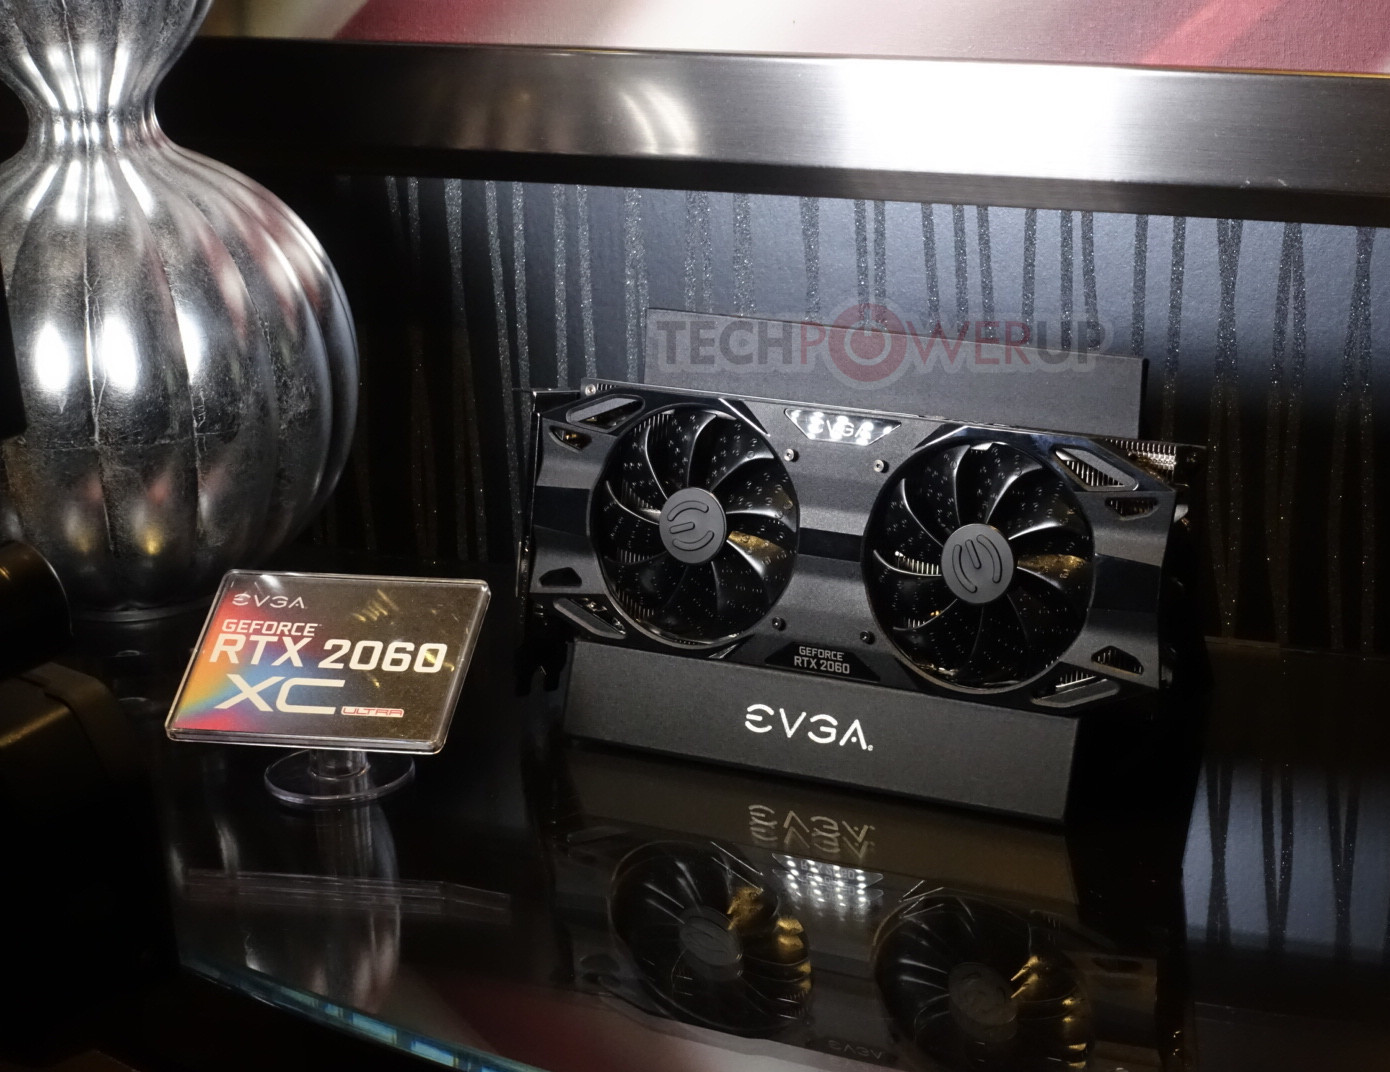 EVGA's RTX 2060 SC, XC, XC Ultra Make an Appearance at CES